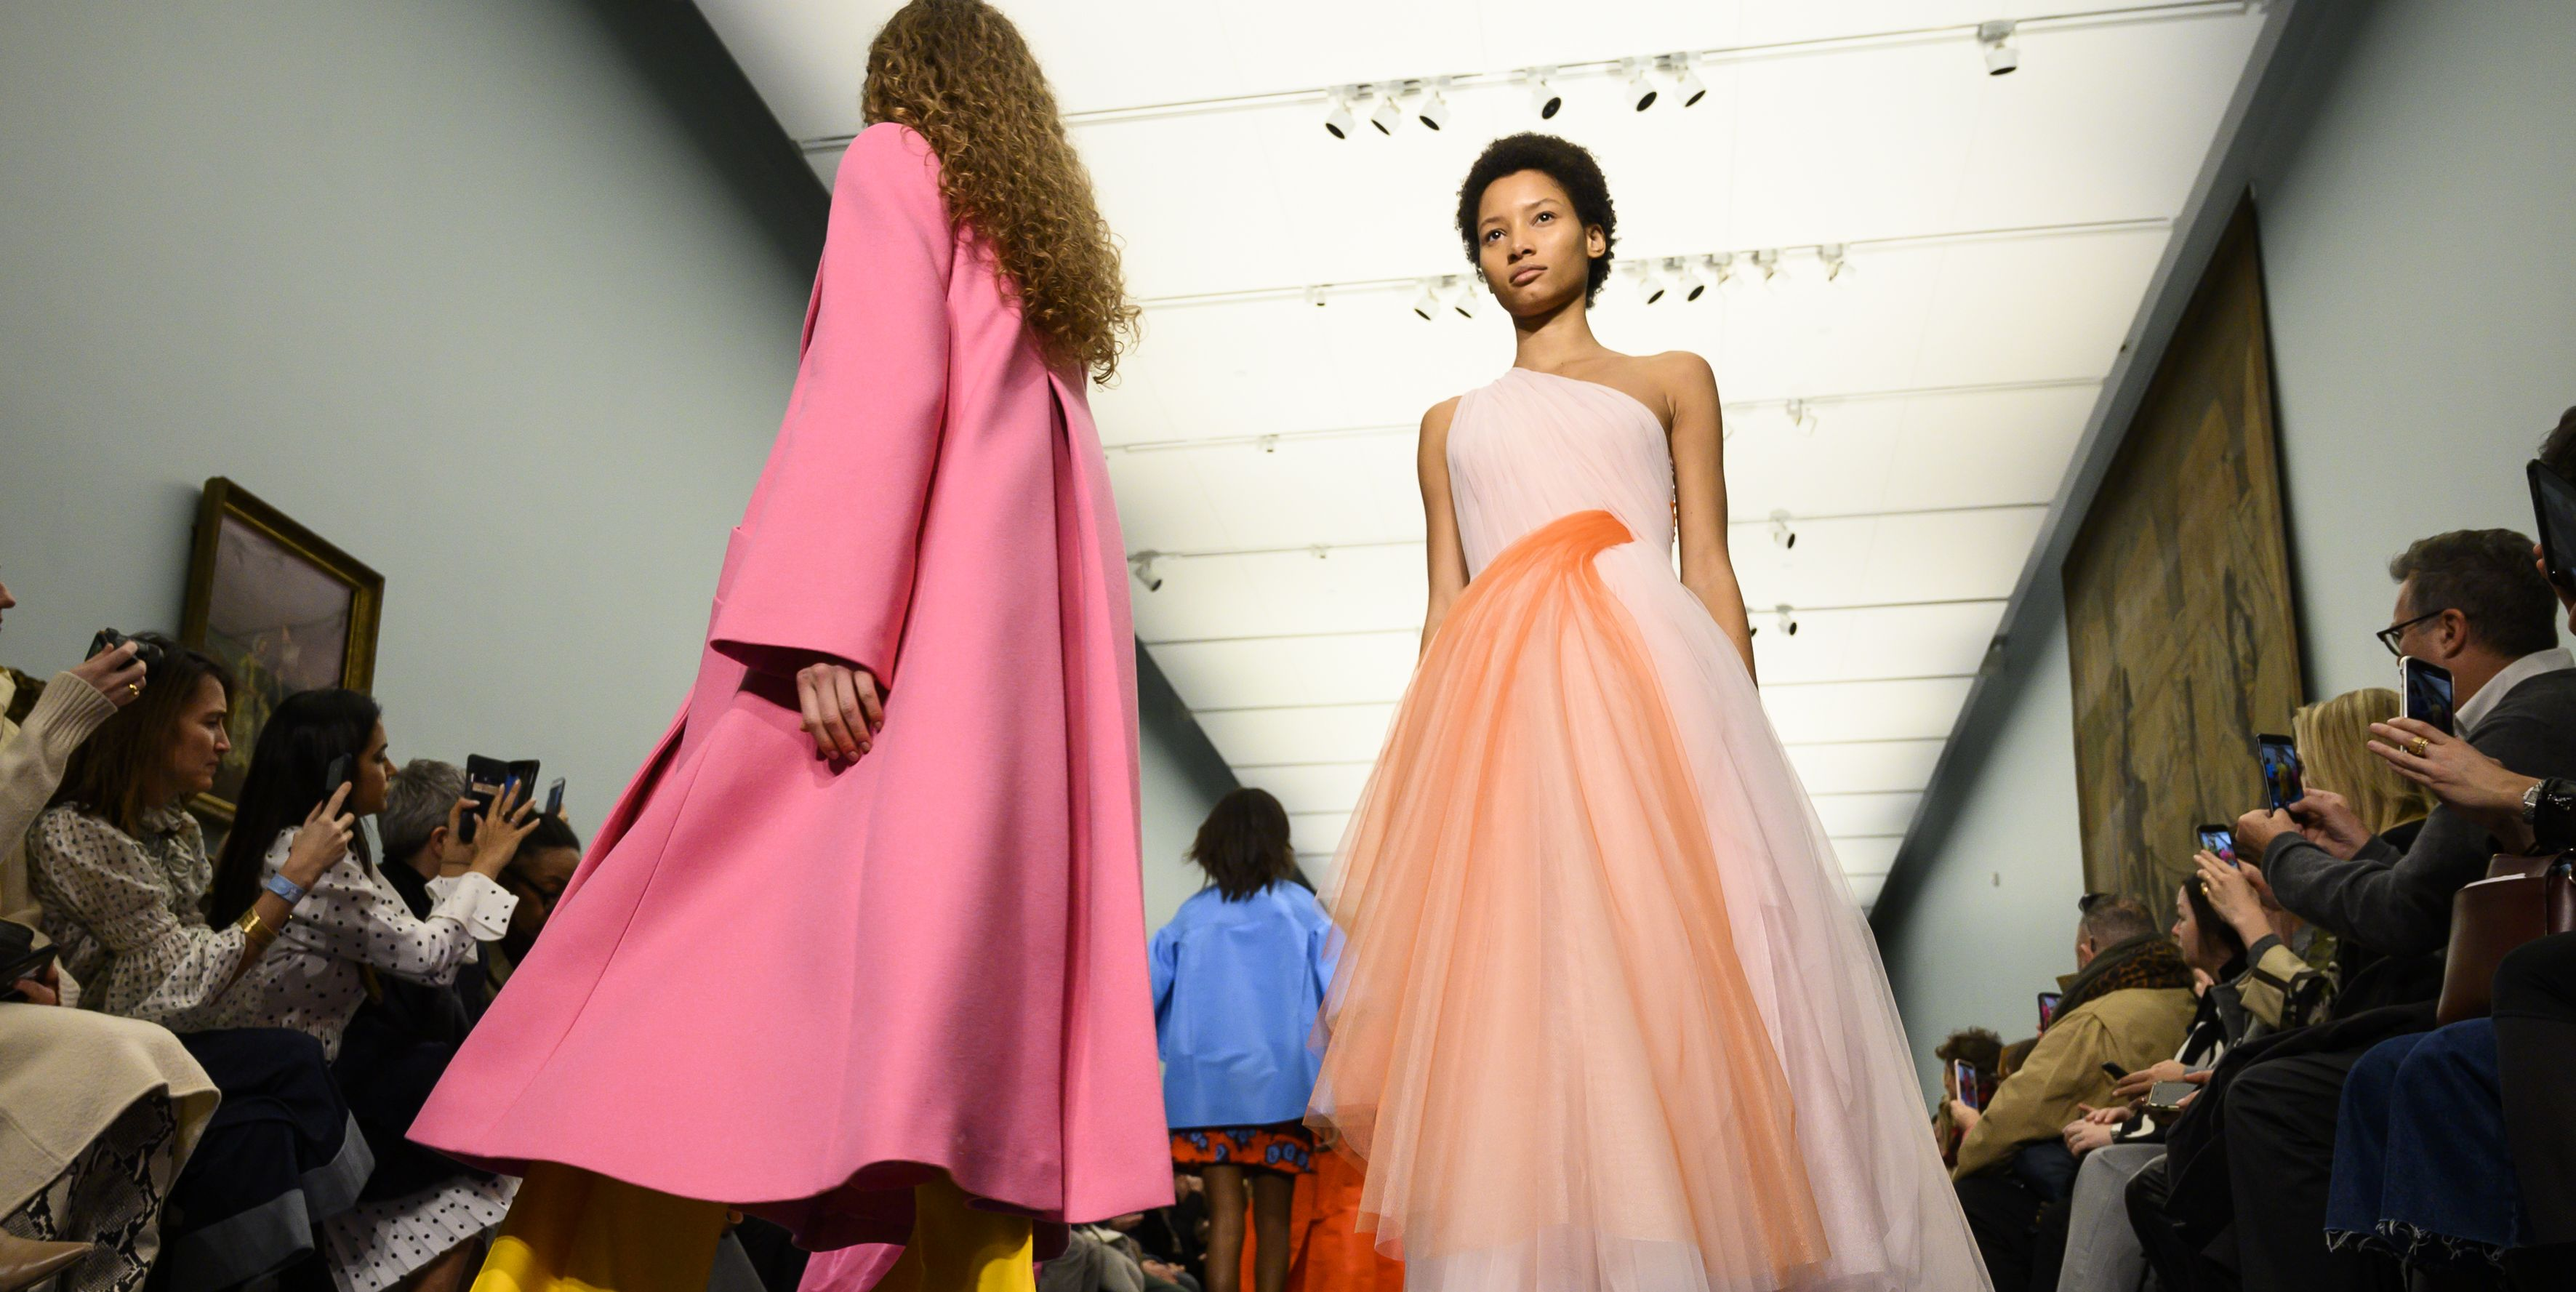 Creative director Wes Gordon provides a colorful selection for party girls young and old.